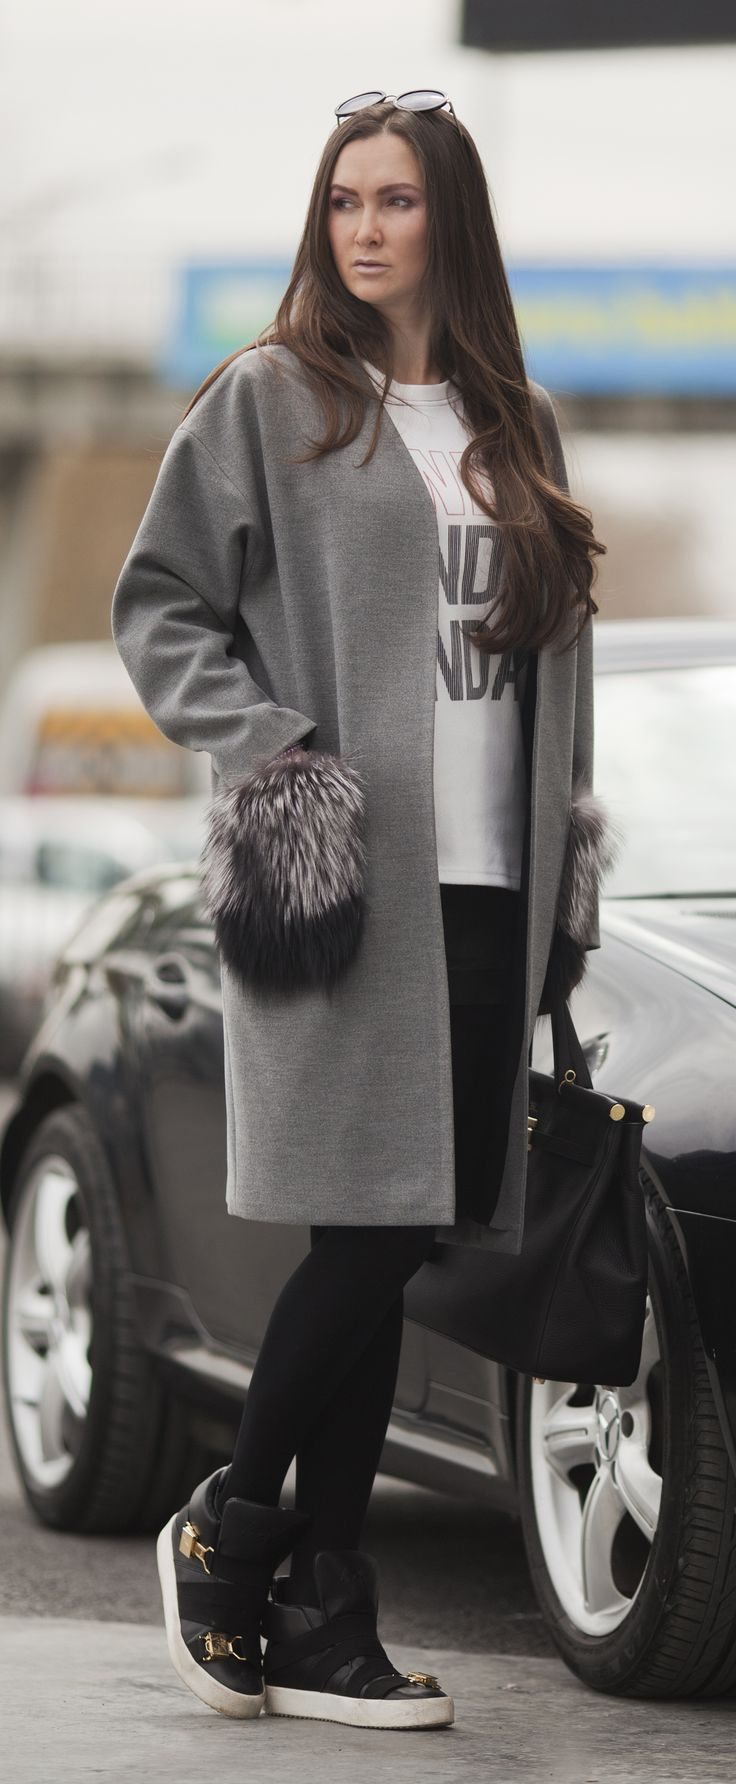 Cashmere grey coat with removable fur pockets by ADAMOFUR #style #look #fur #furcoat #coat #fashionista #ootd #grey